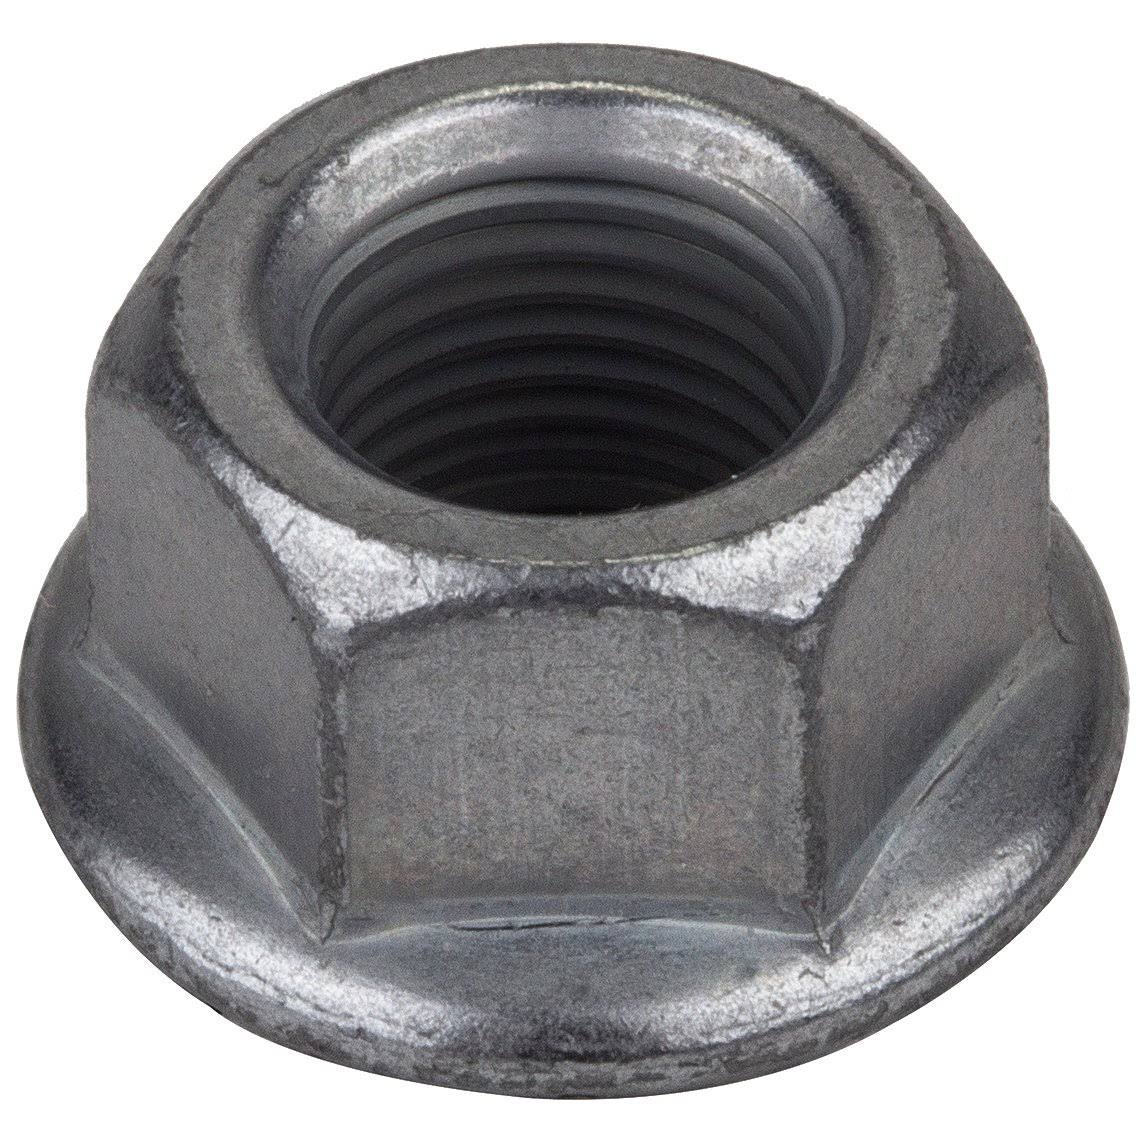 Sunlite Rust Shield Bicycle Hub Axle Nut - Flanged Grey, 5/16 x 24t